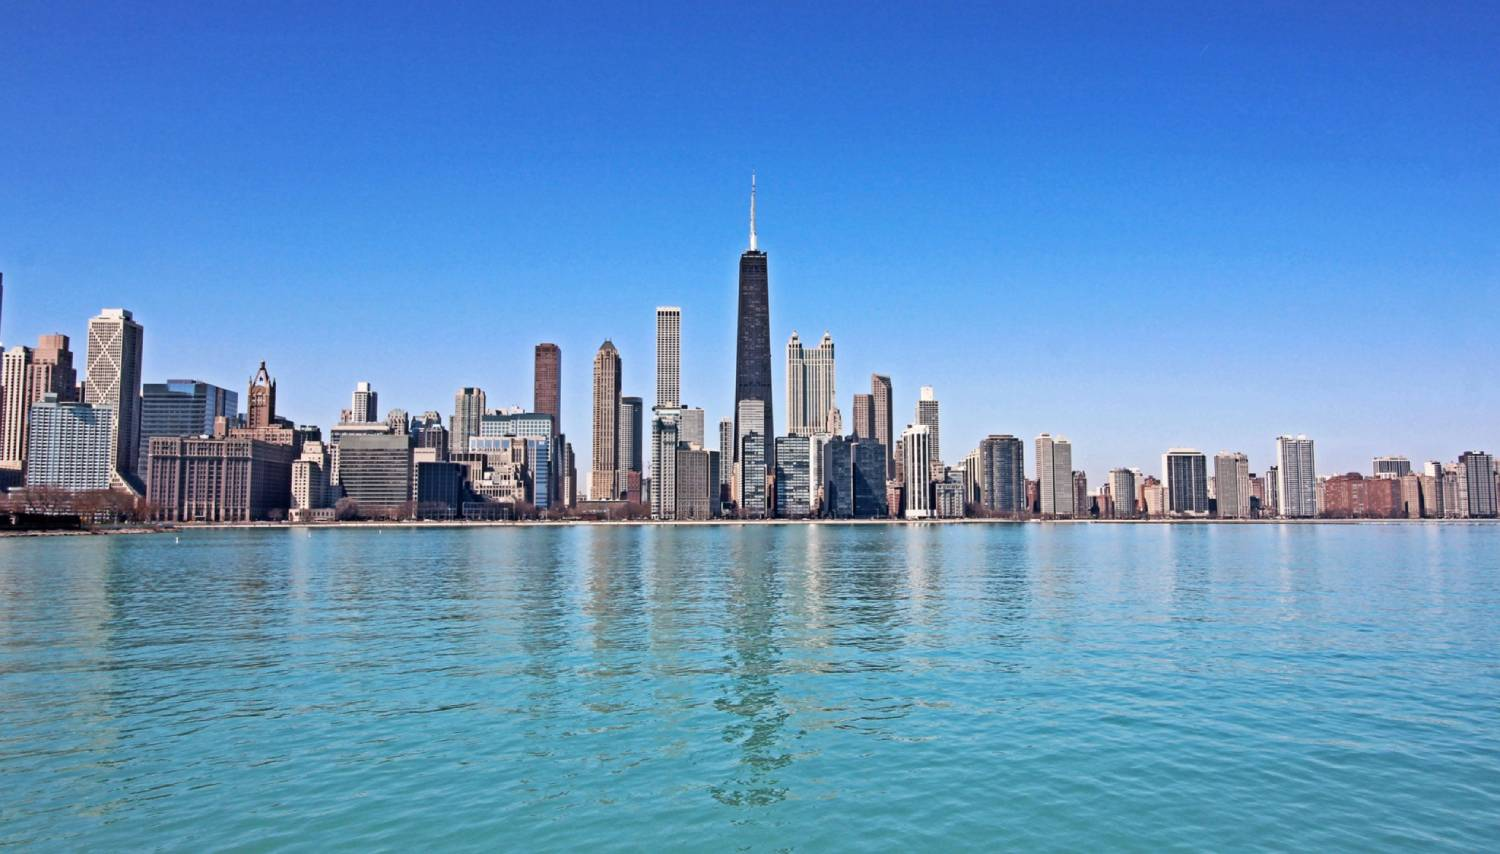 Lake Michigan - Things To Do In Chicago